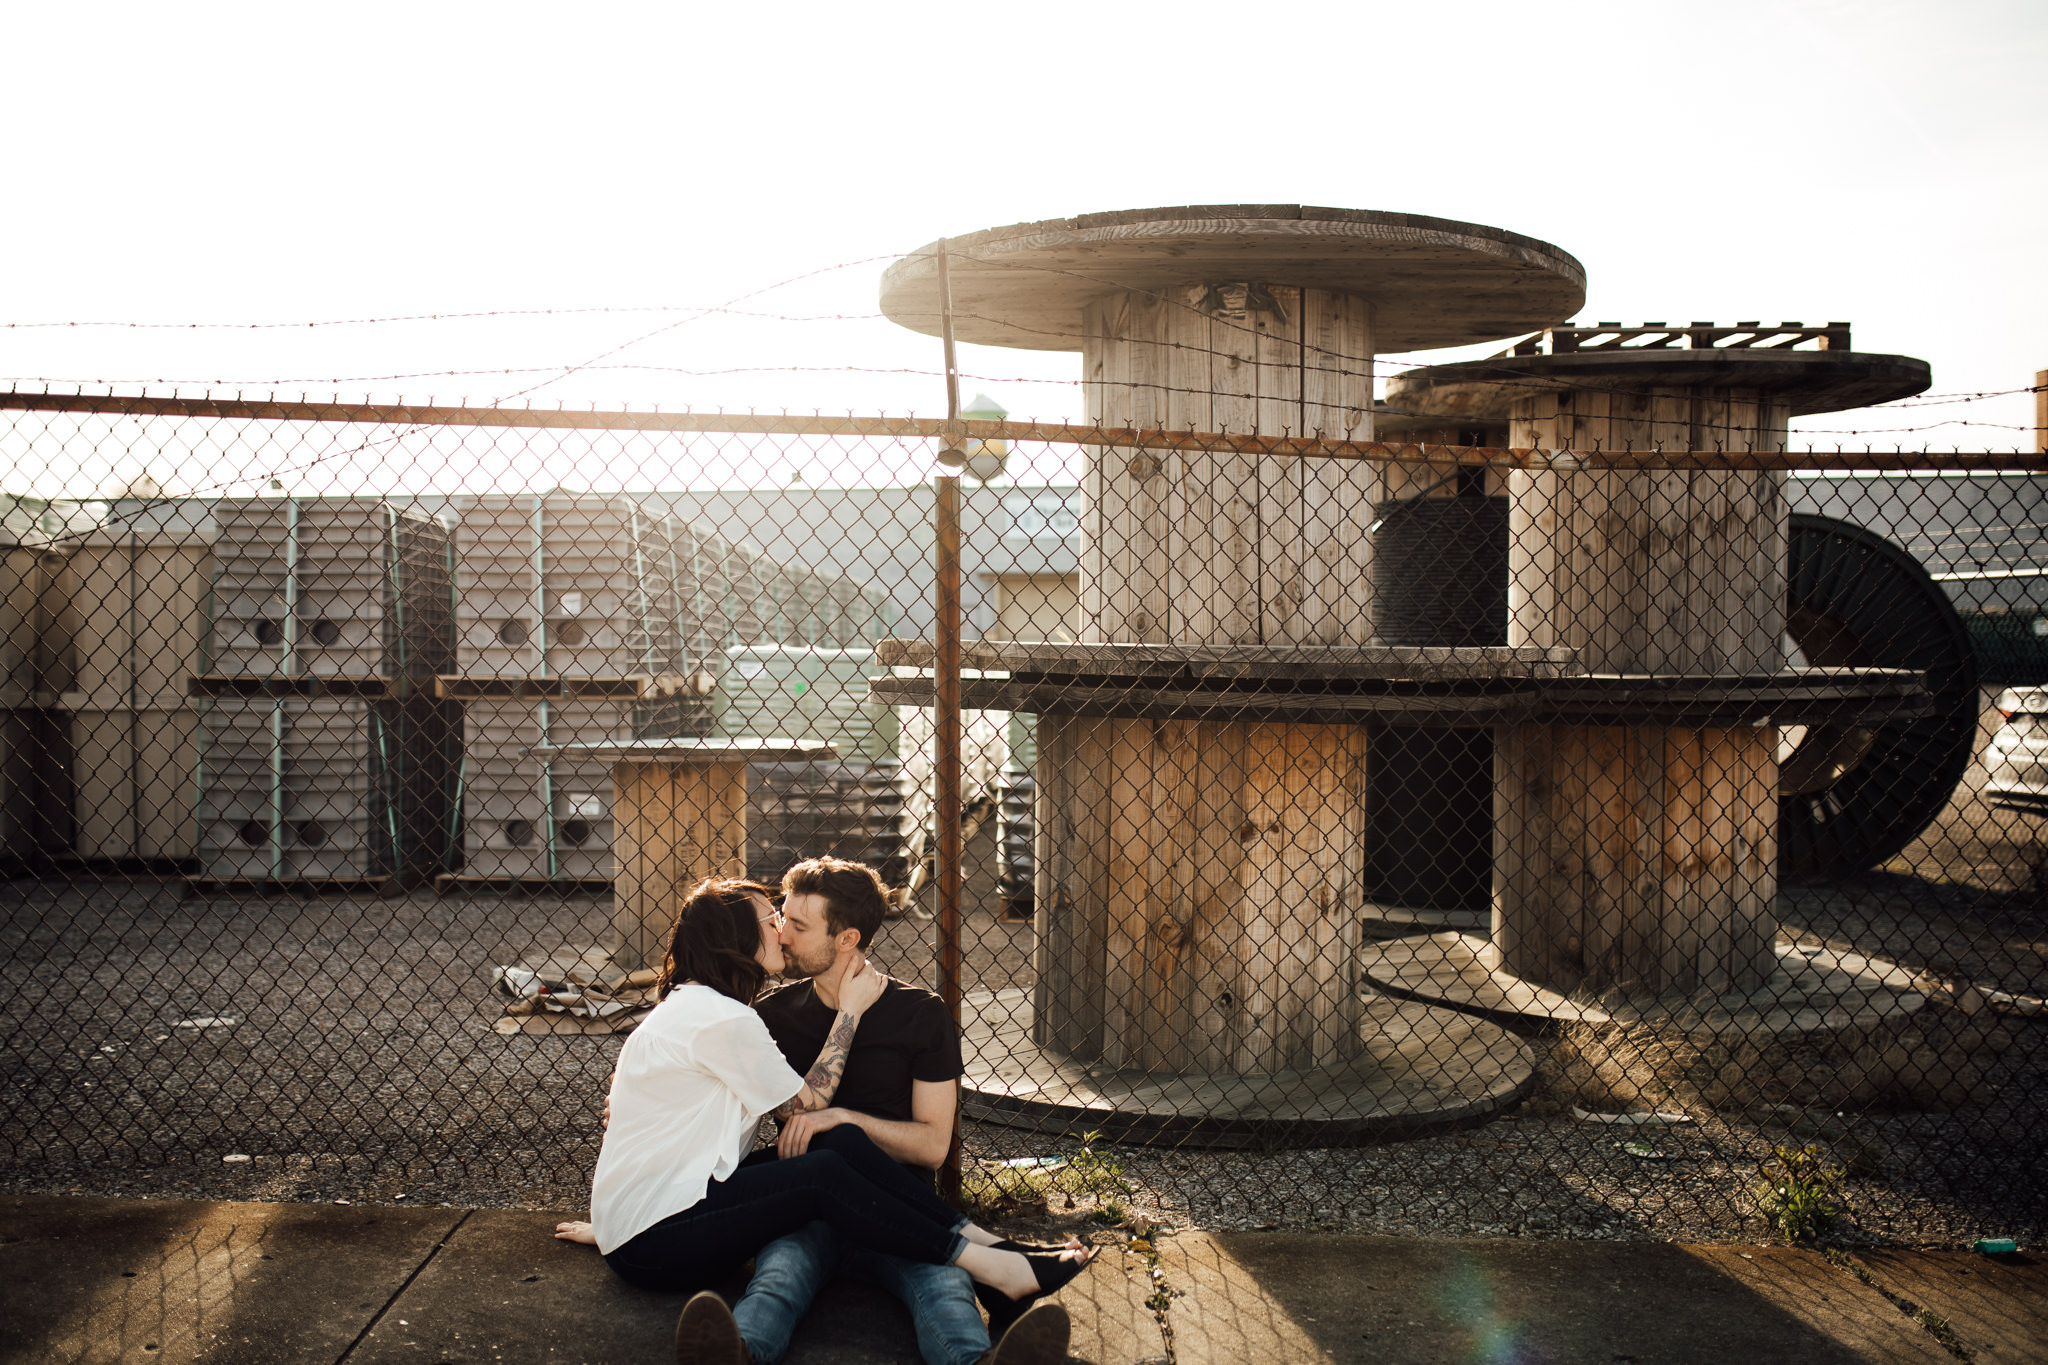 memphis-wedding-photographer-the-warmth-around-you-unique-colorful-engagement-pictures (43 of 80).jpg